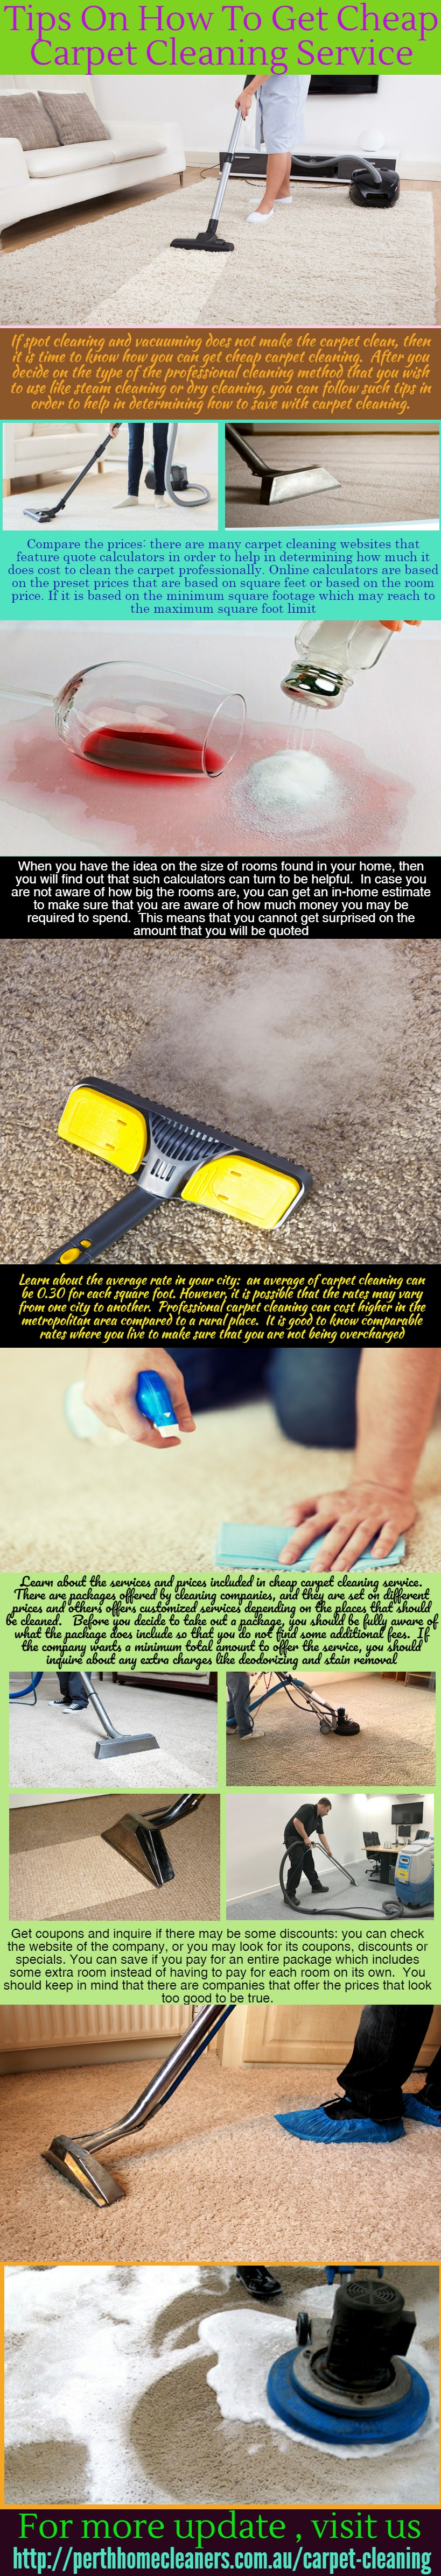 Carpet Cleaning Photo Likes